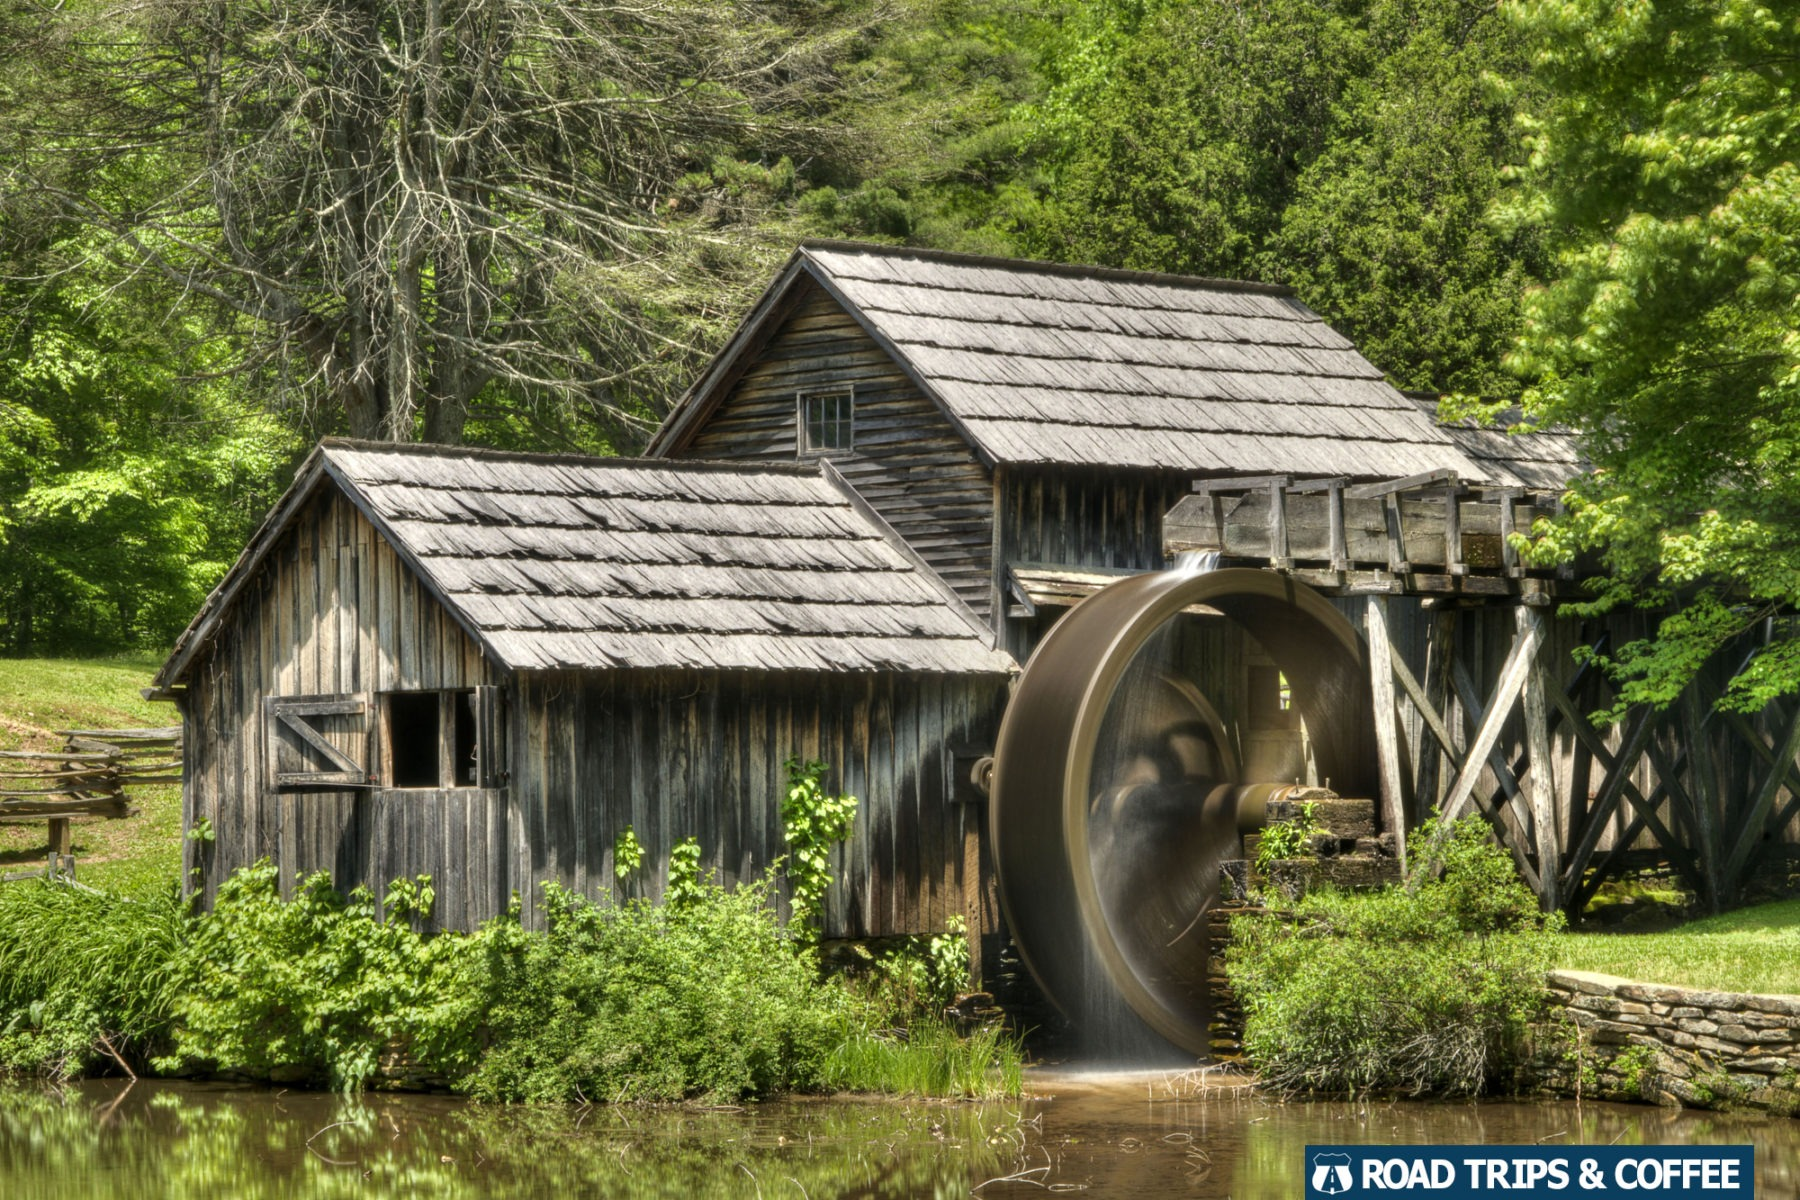 The iconic Mabry Mill beside the mill pond on the Blue Ridge Parkway in Virginia